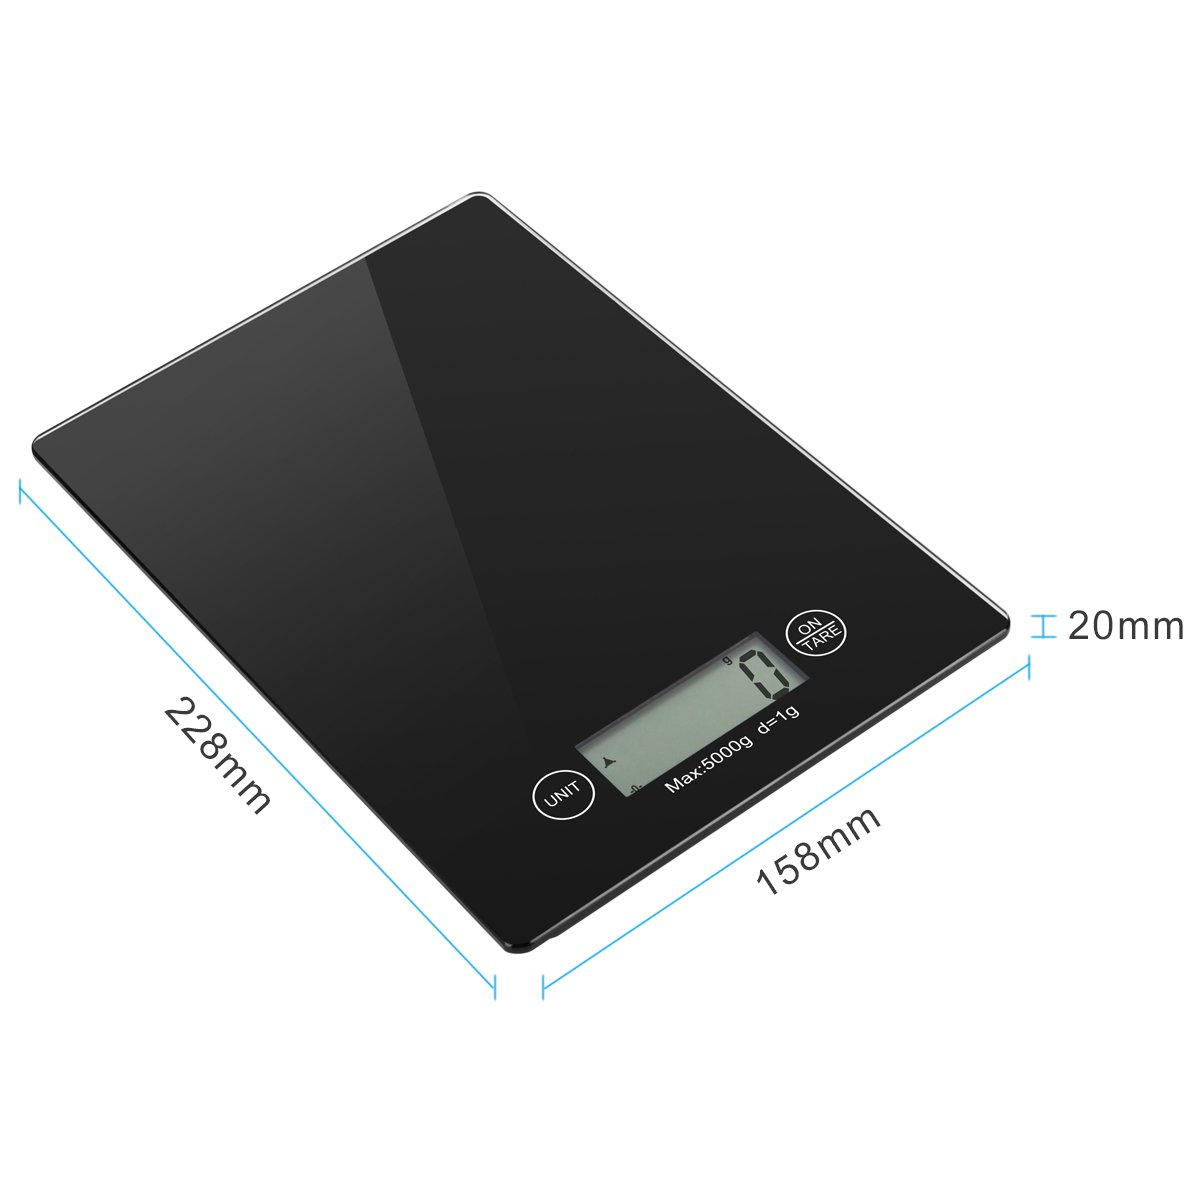 Vellepro Digital Kitchen Scale with 4 Units,Large LCD Display, Auto Off,Tare Function,Multifunction Food Scale with Water-Resistant Tempered Glass Surface,Touch Sensitive Button(Batteries Included)